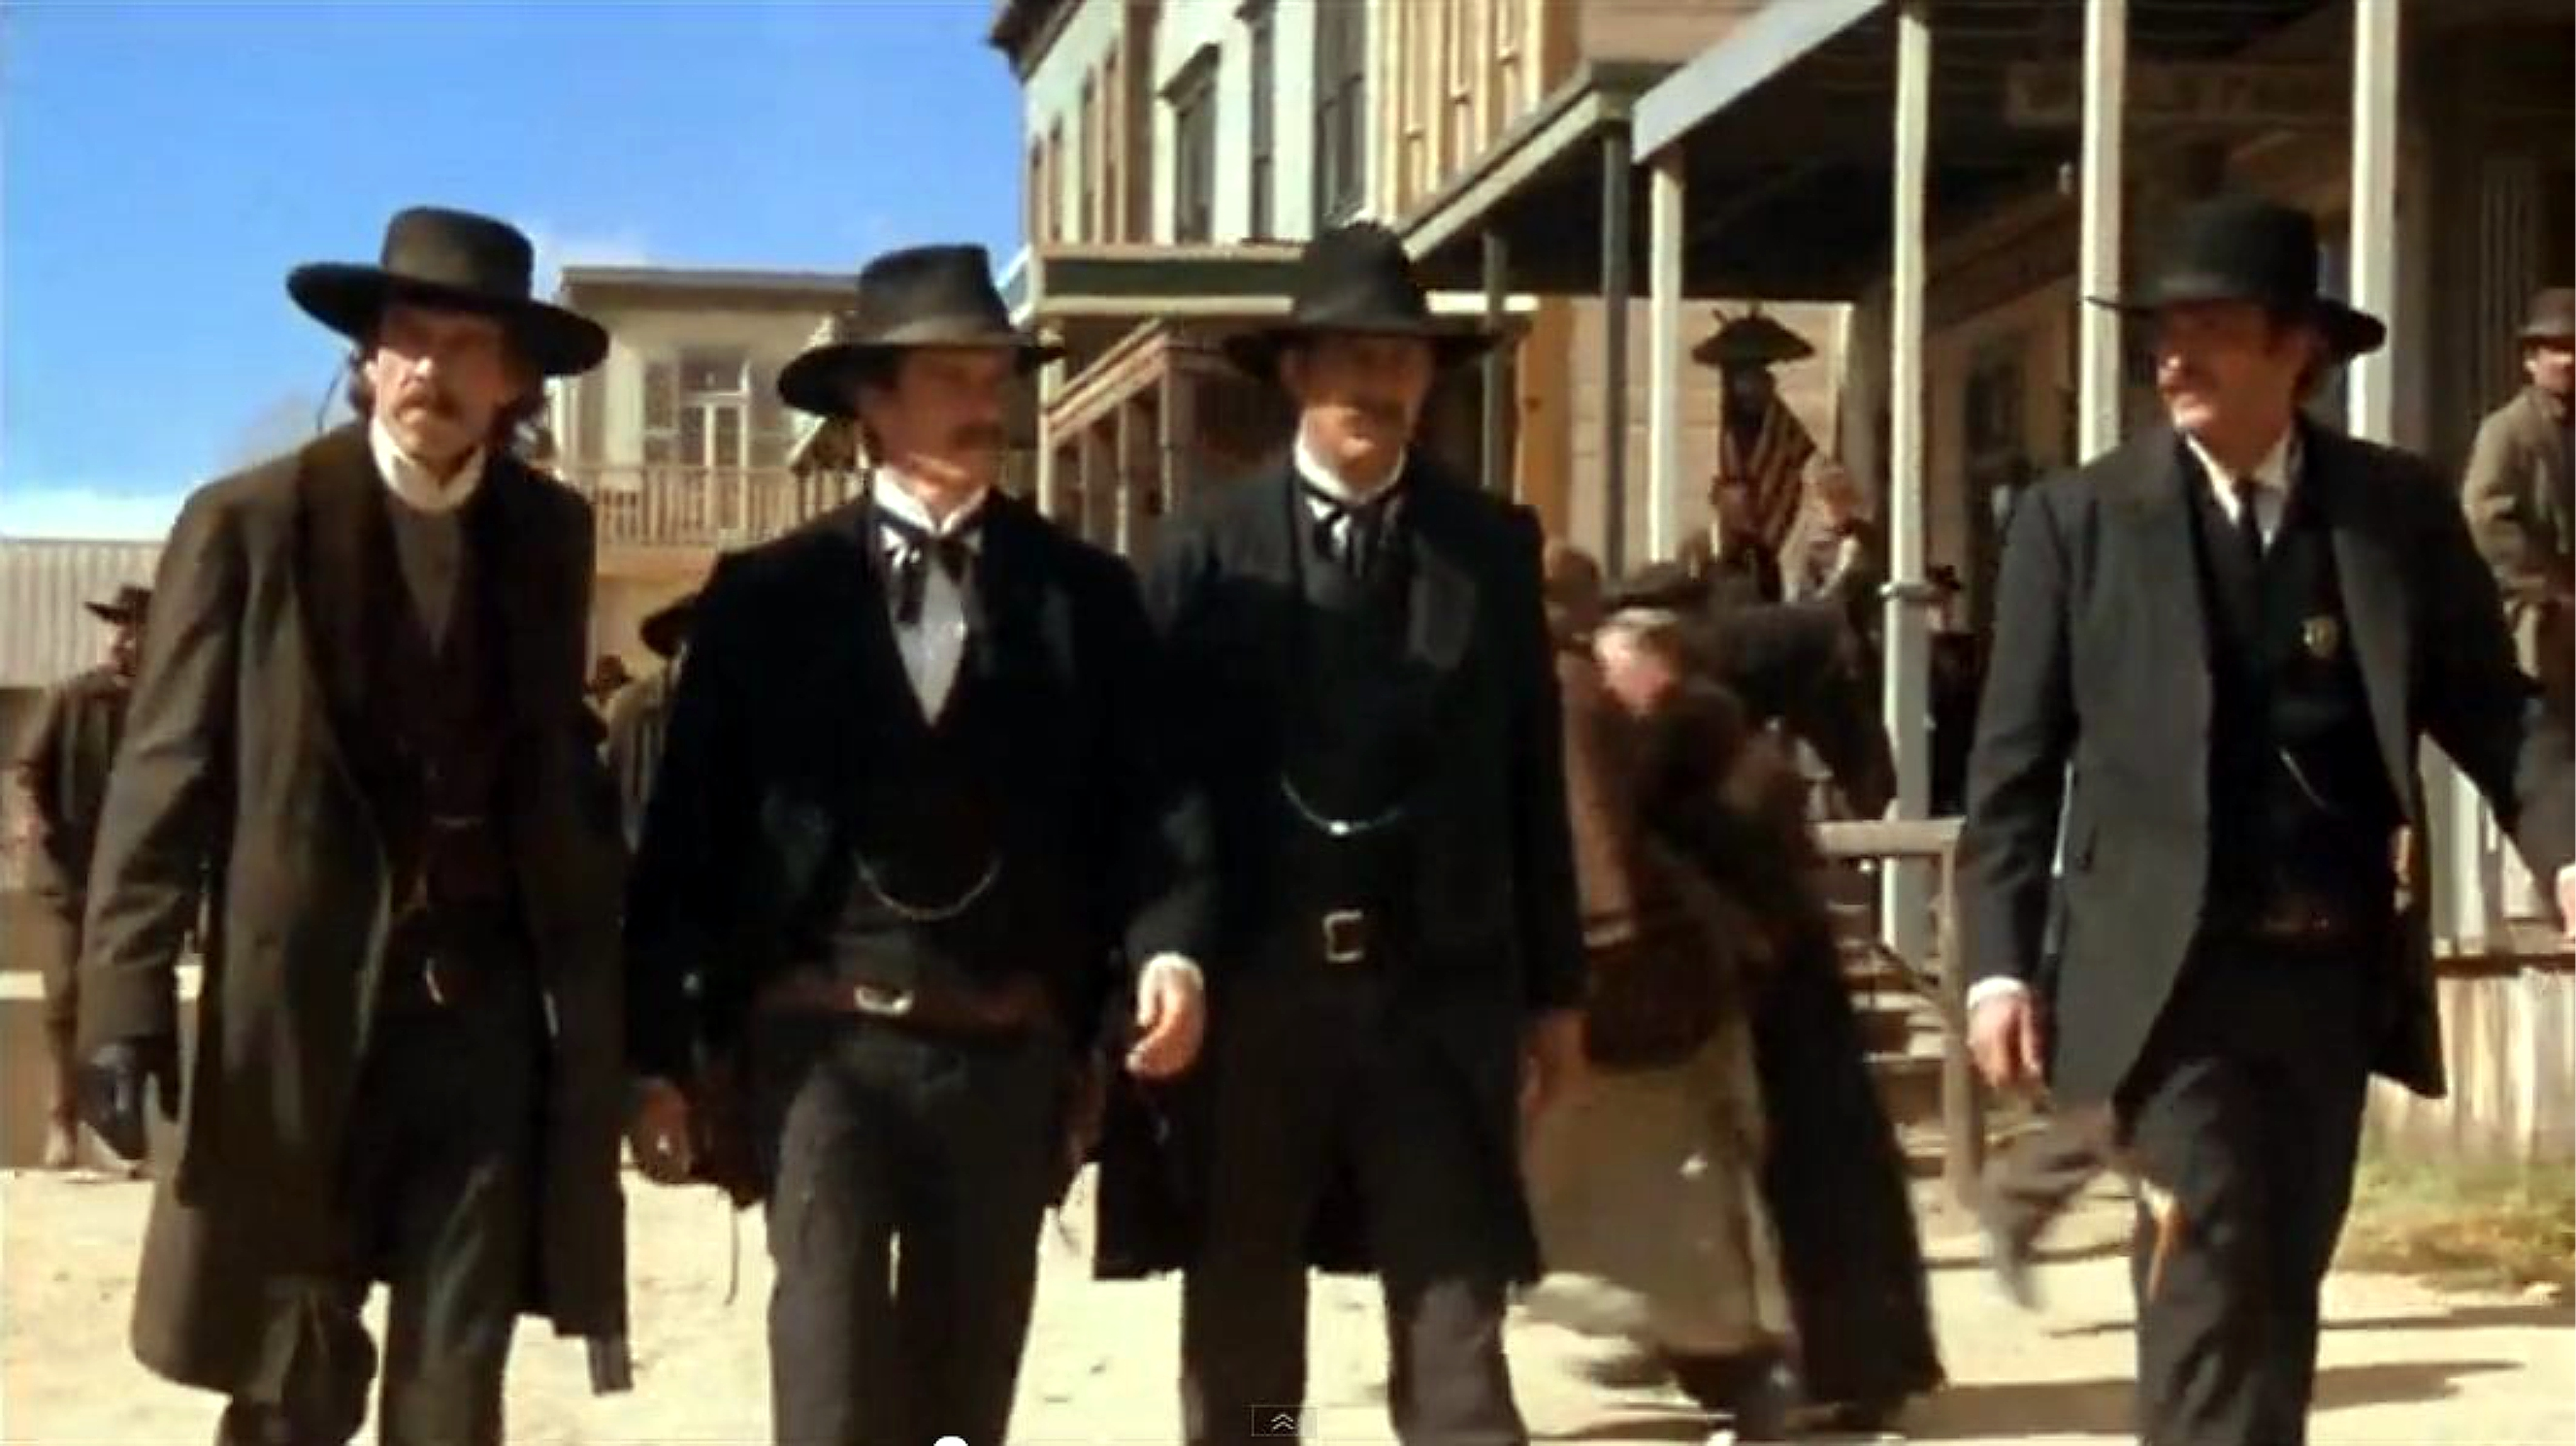 gunfight at the ok corral my favorite westerns wyatt earp dennis quaid michael madsen kevin costner linden ashby